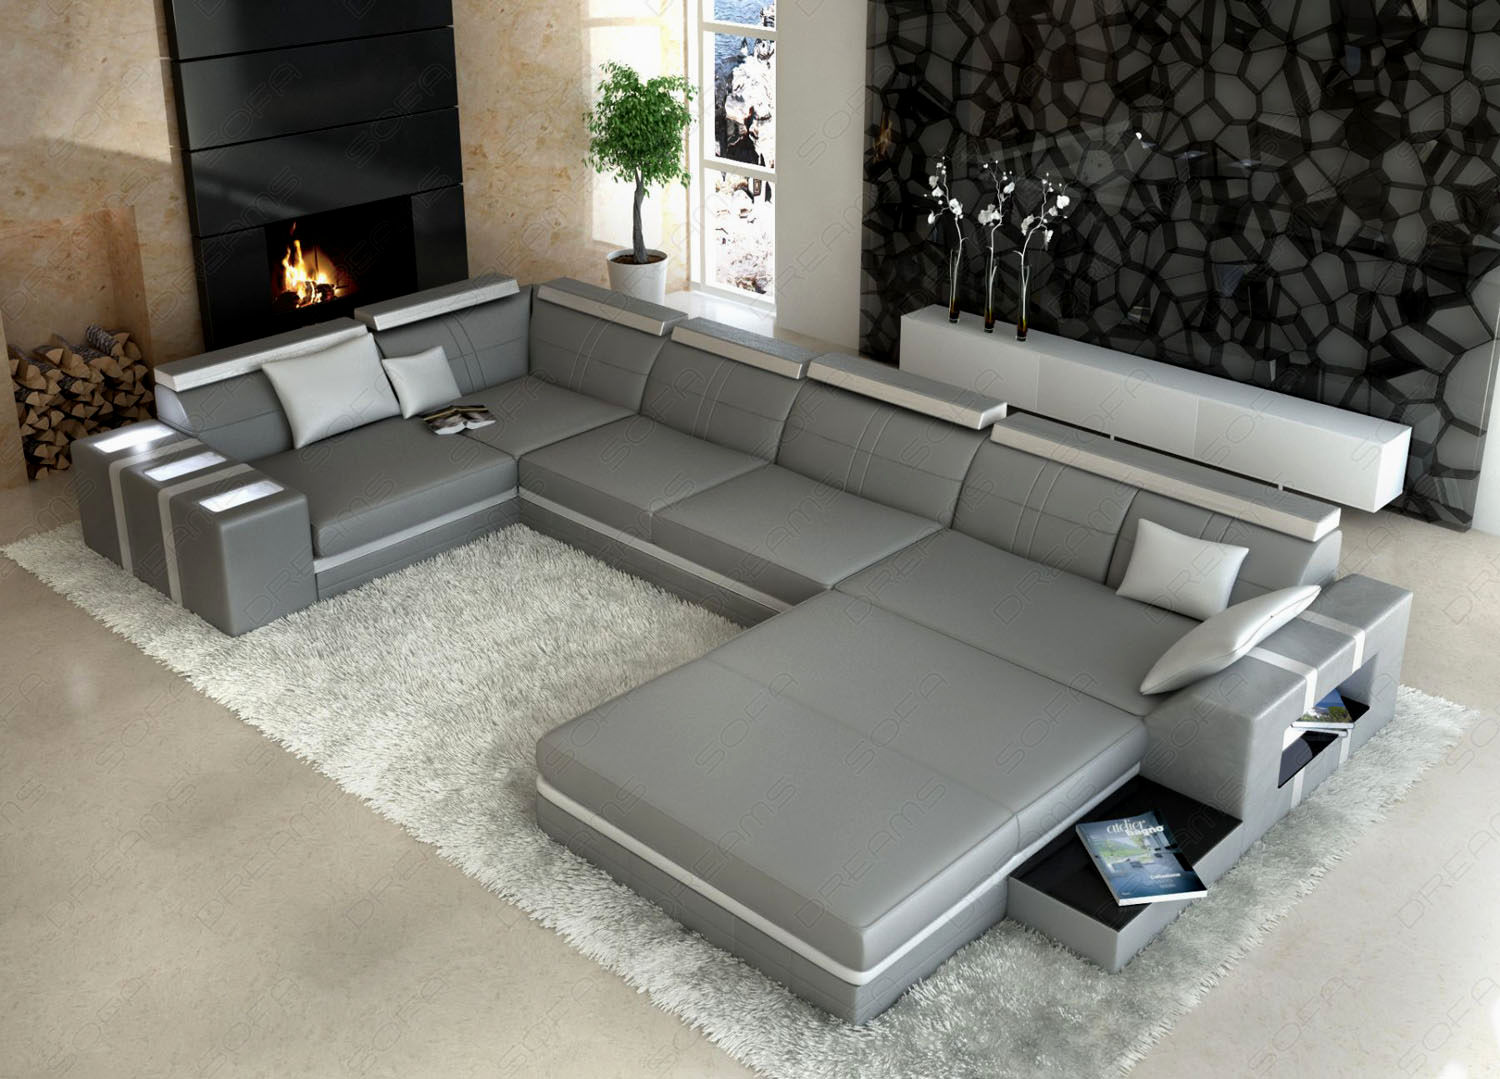 awesome chaise lounge sofa plan-Terrific Chaise Lounge sofa Gallery